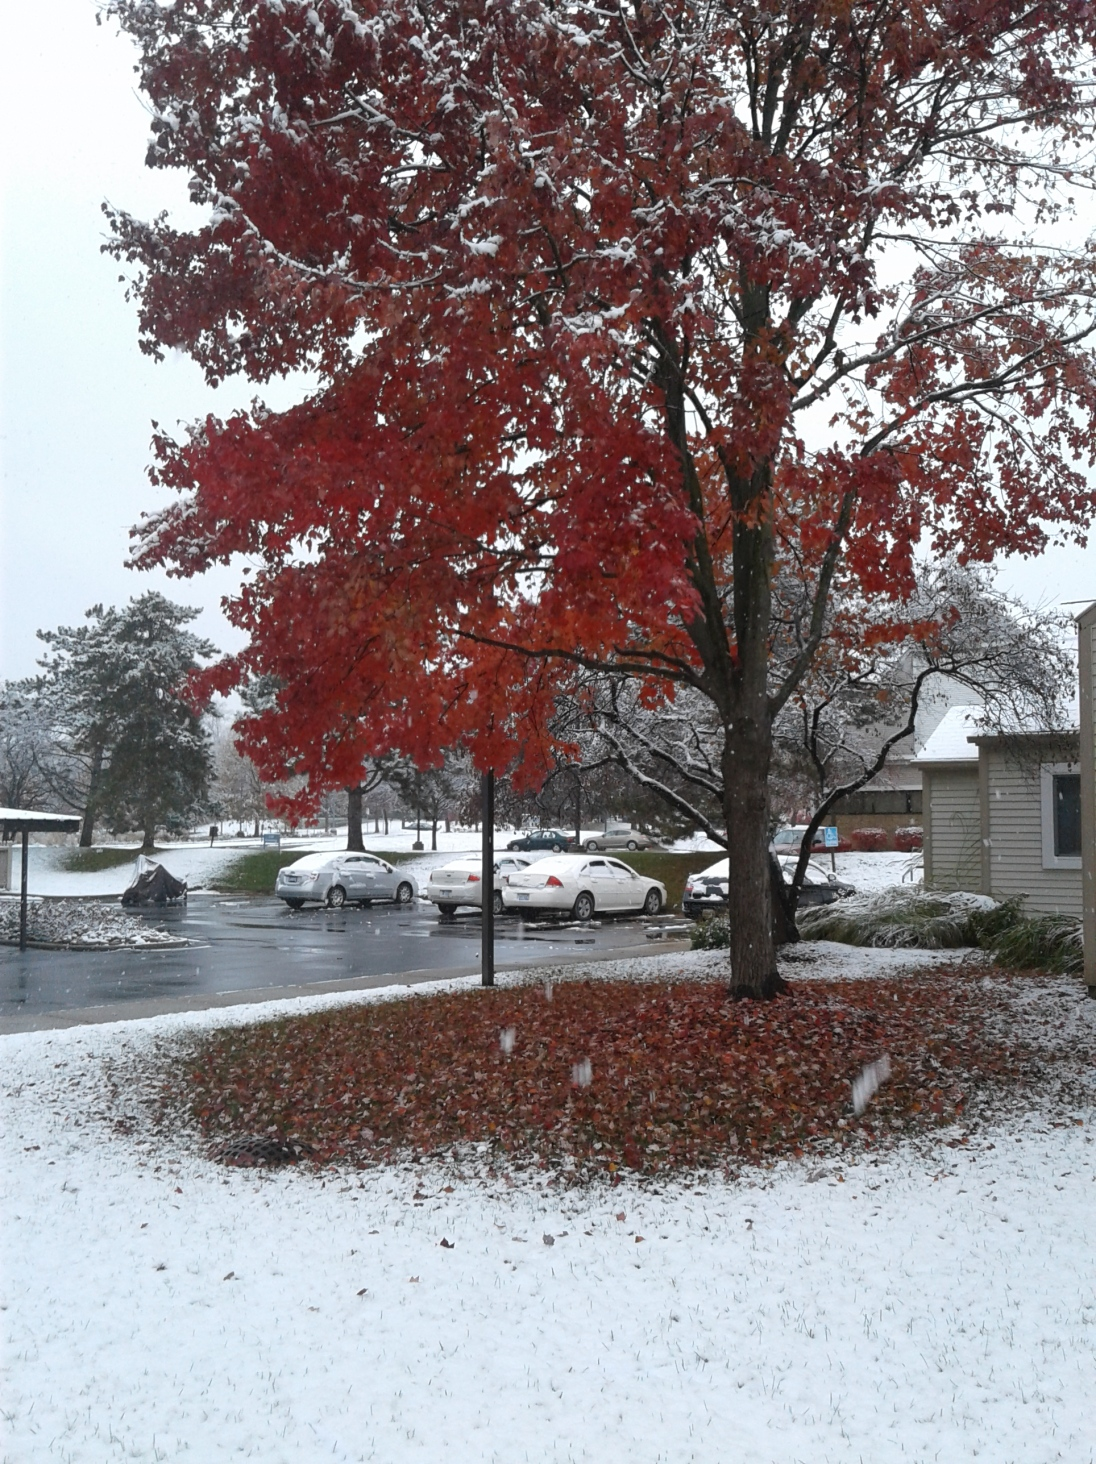 Maple tree with red leaves and snow on the ground